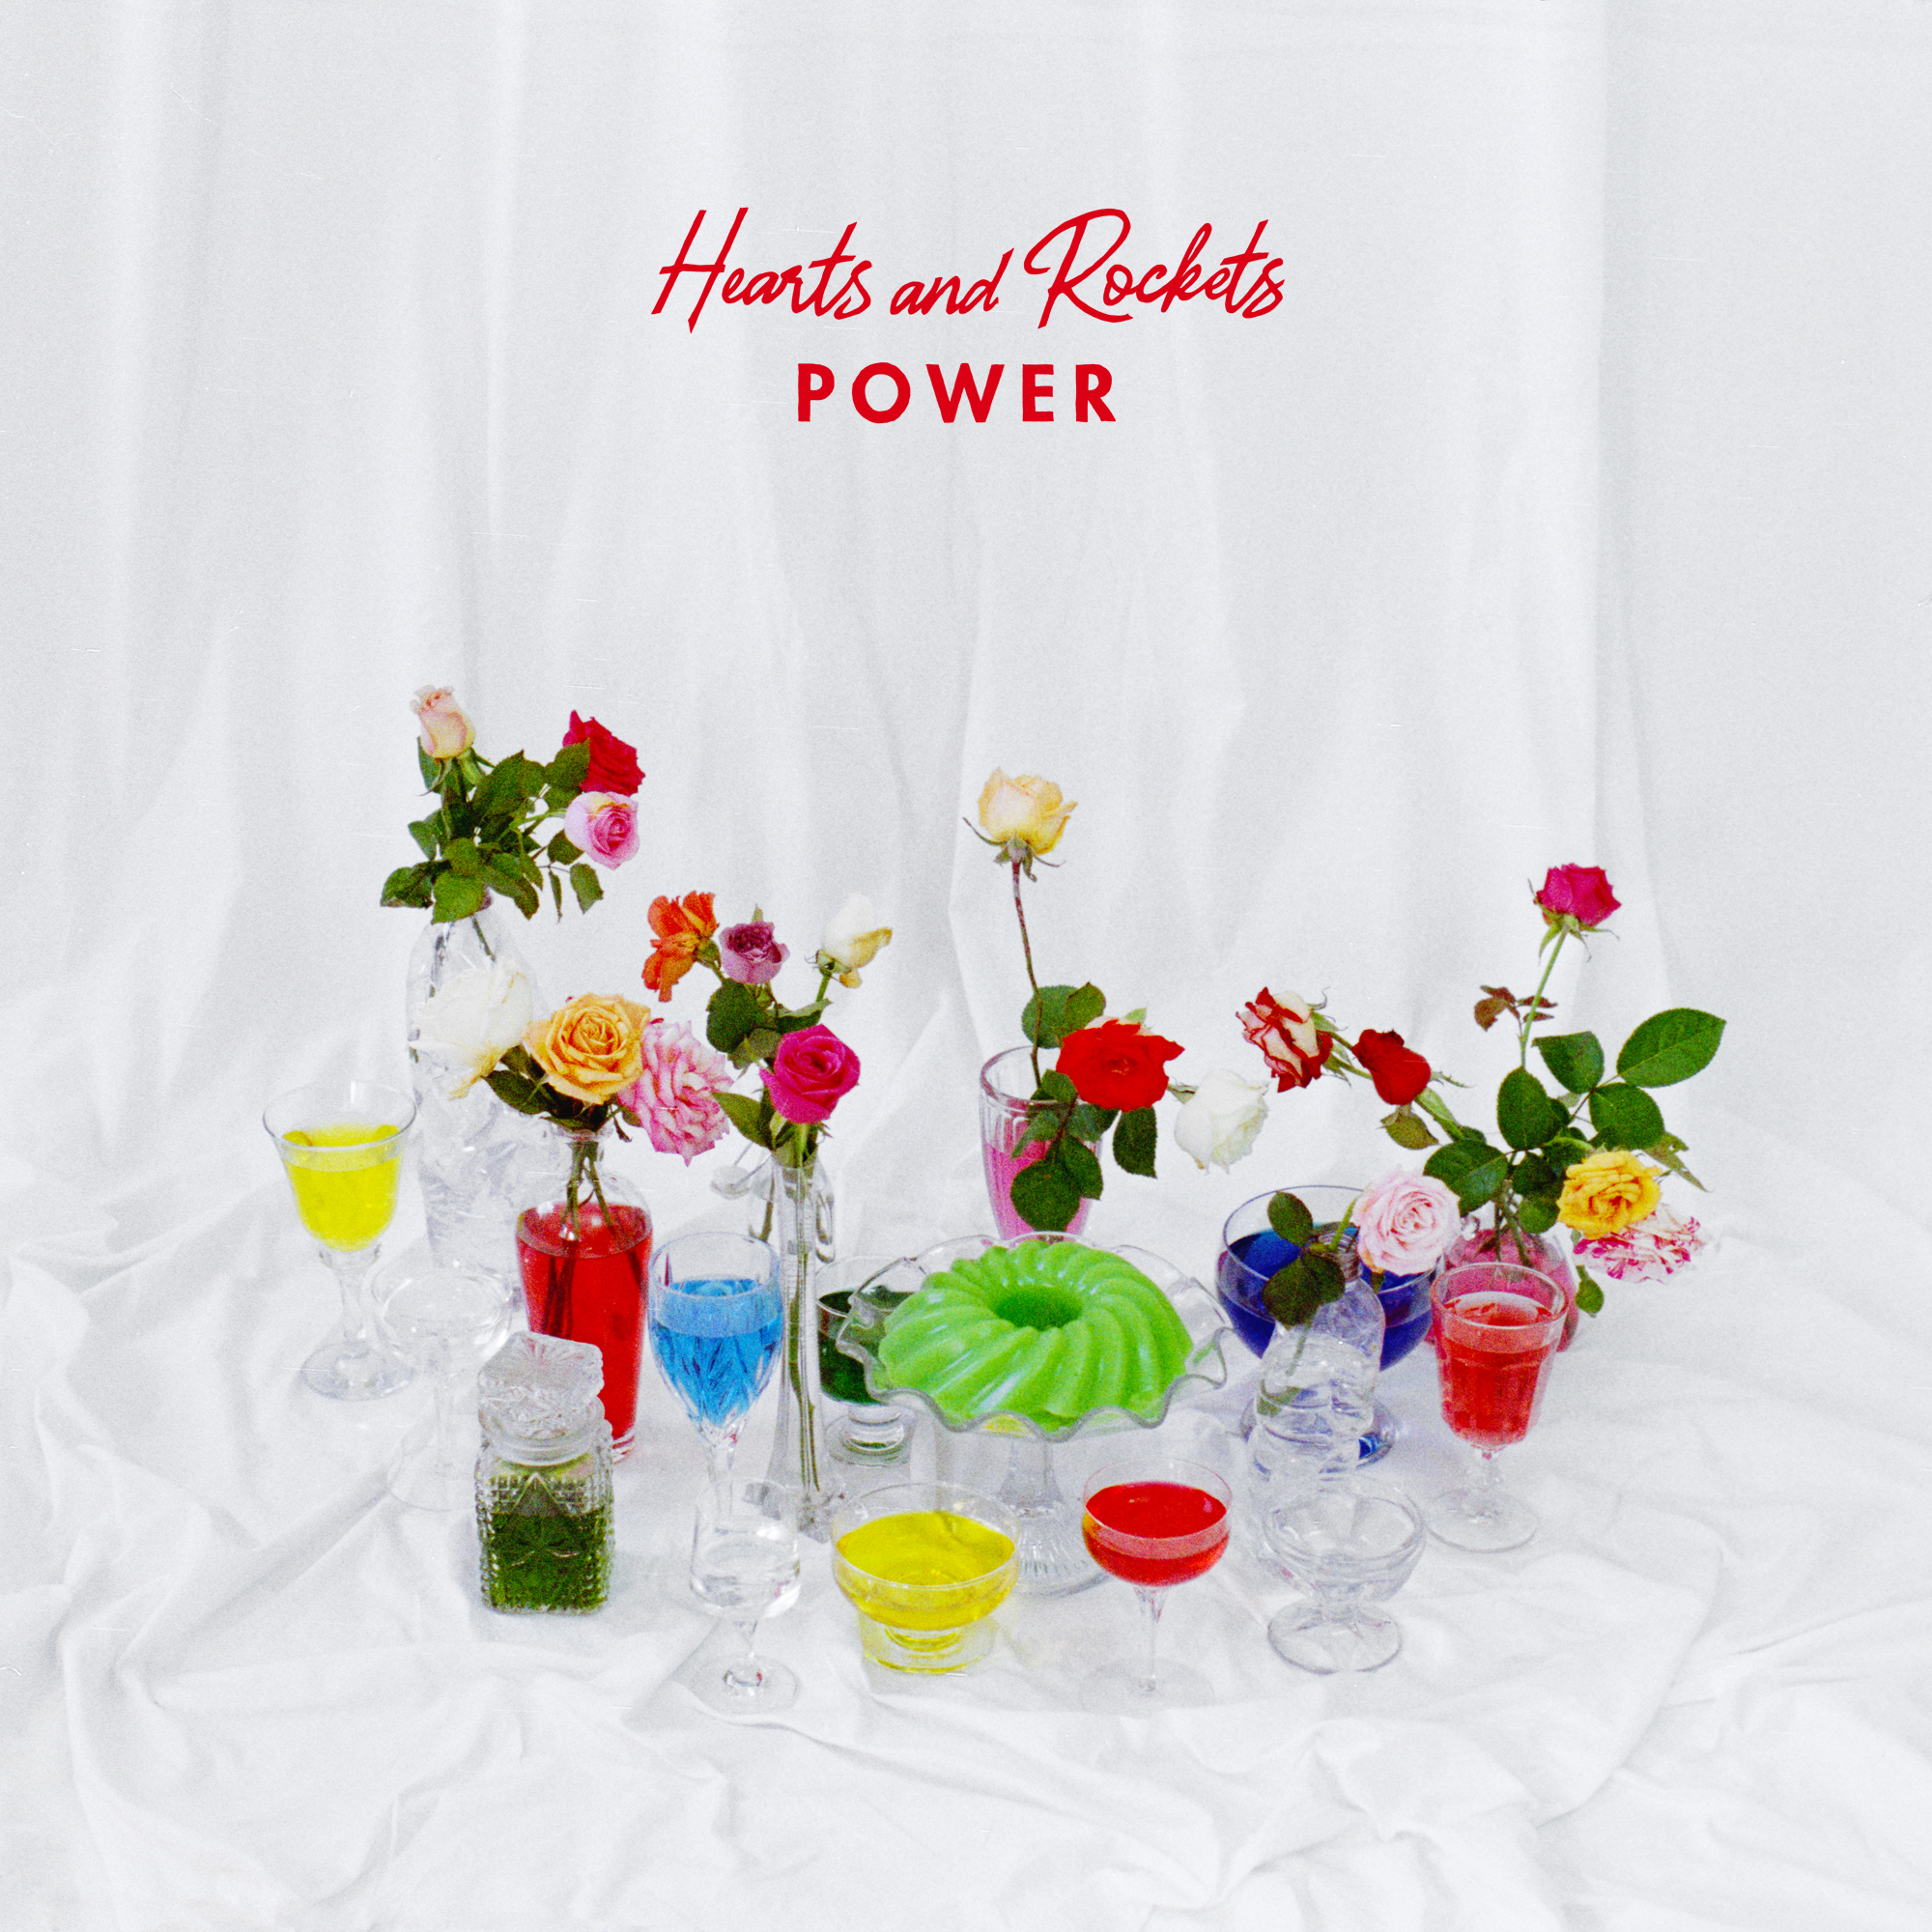 cover_Hearts and Rockets-Power (1).jpg